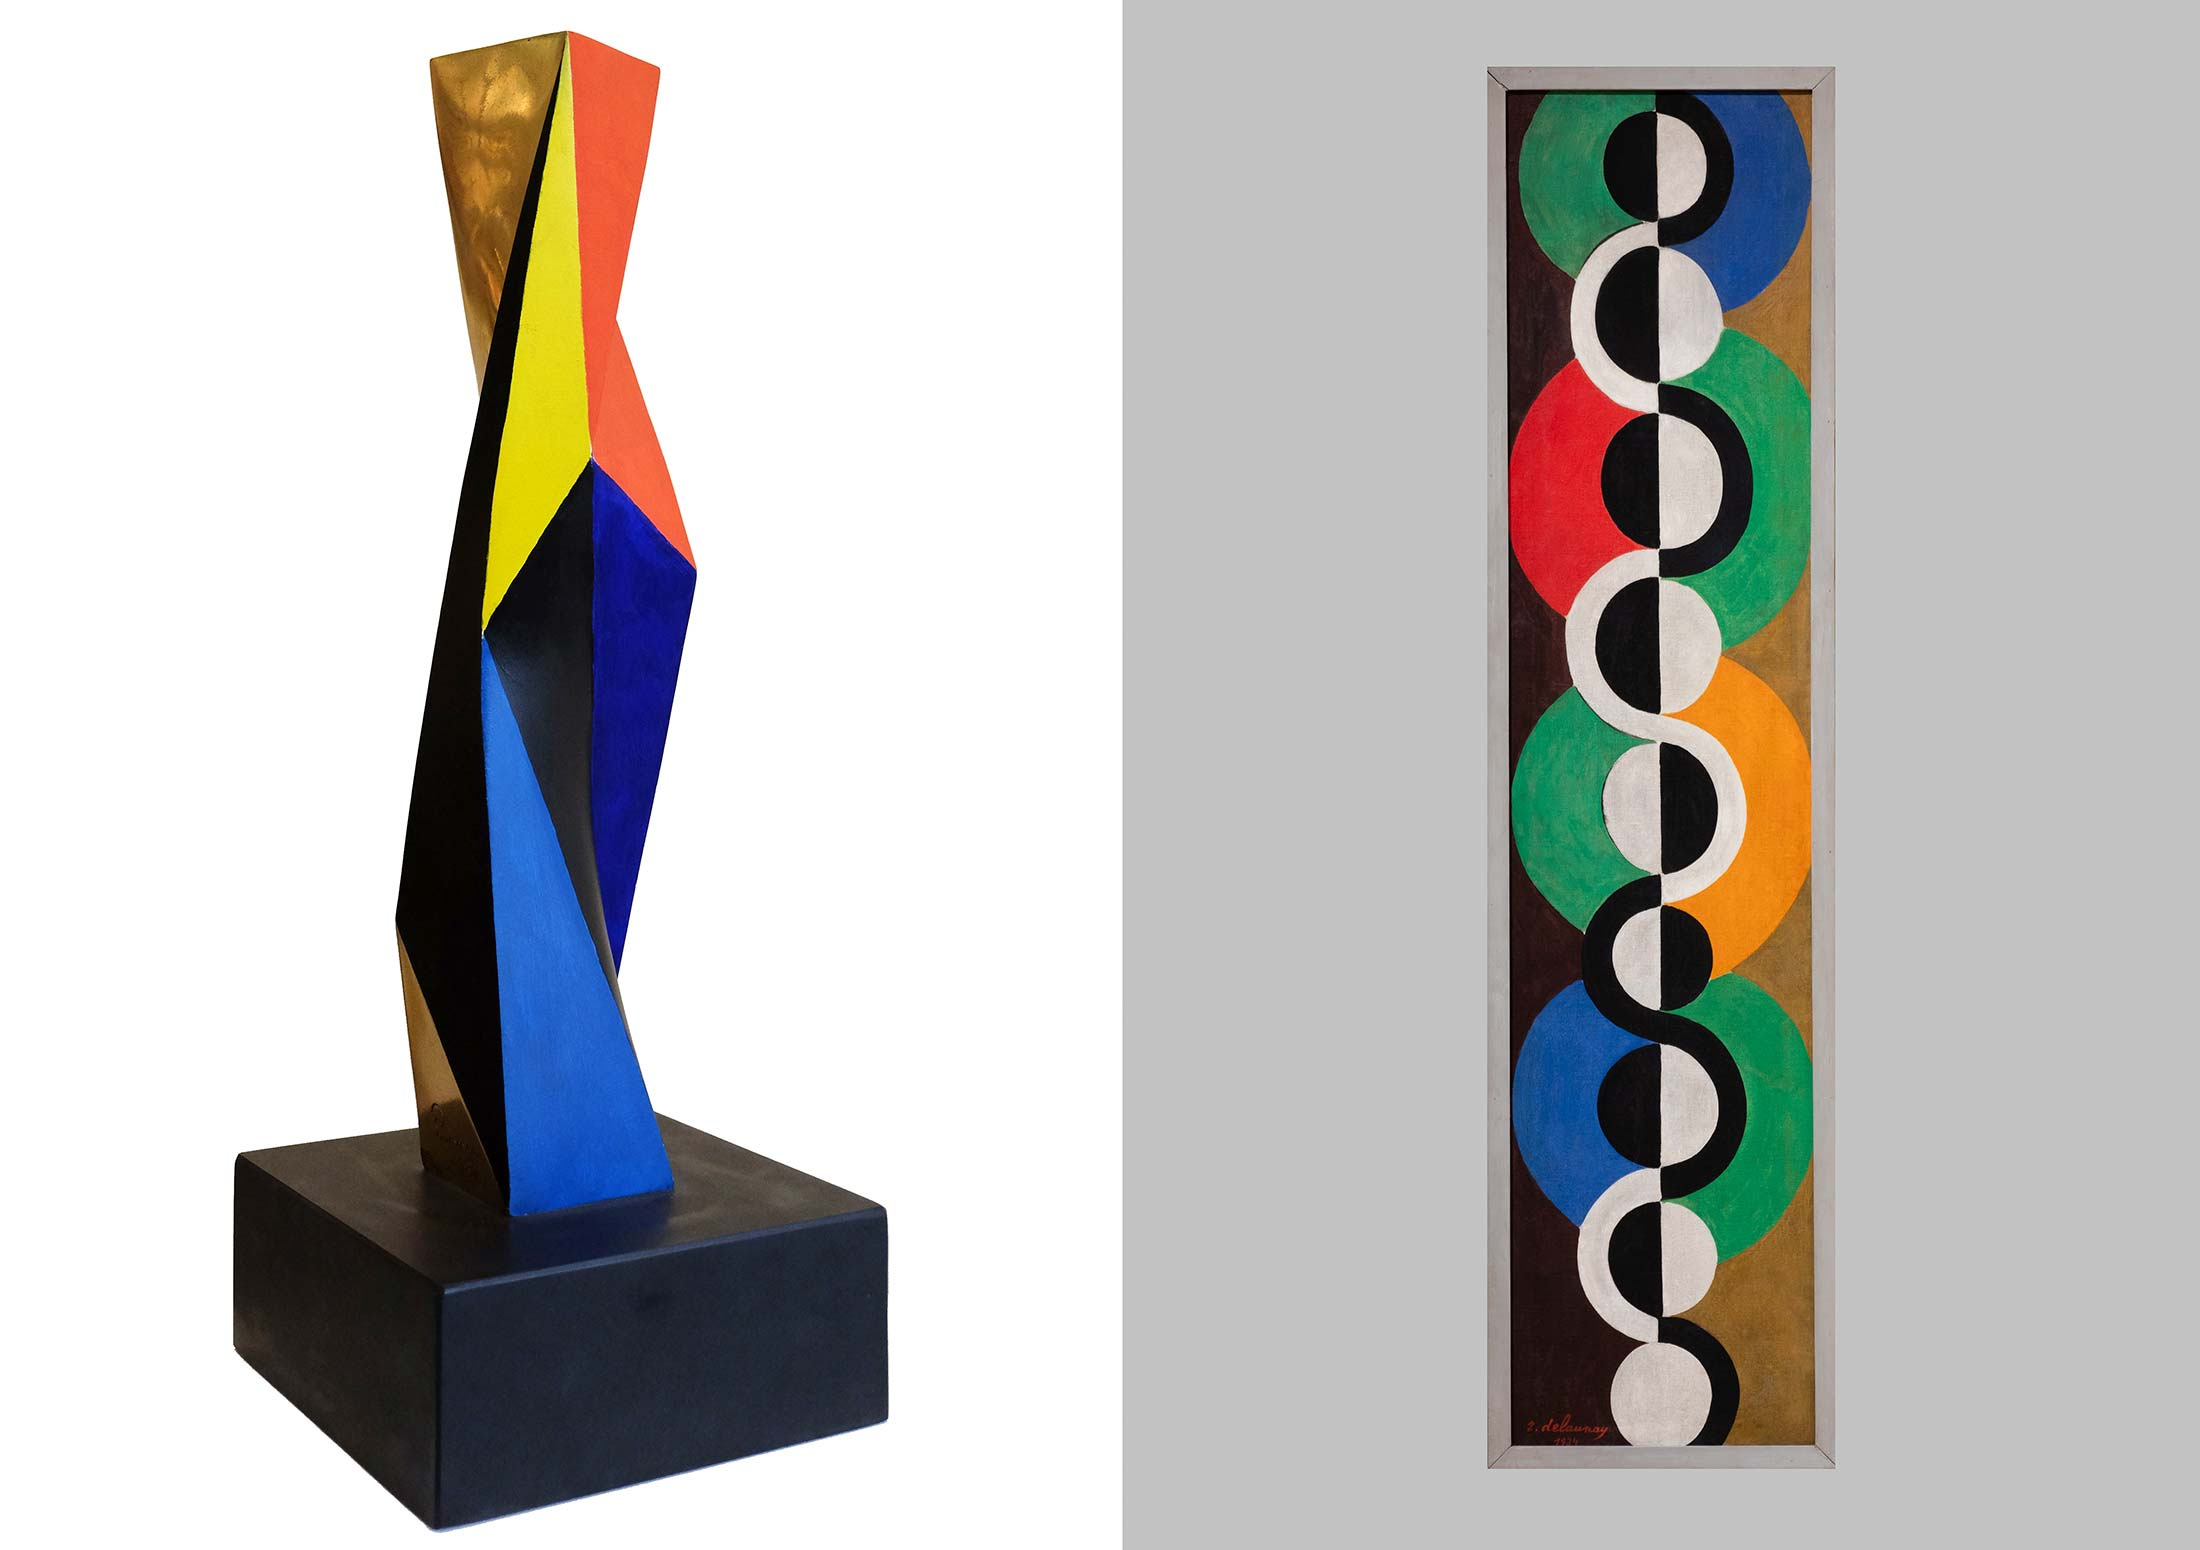 On the left: Colonne (1932) by Anton Prinner; on the right: Rhythm San Fin (1934)by Robert Delaunay